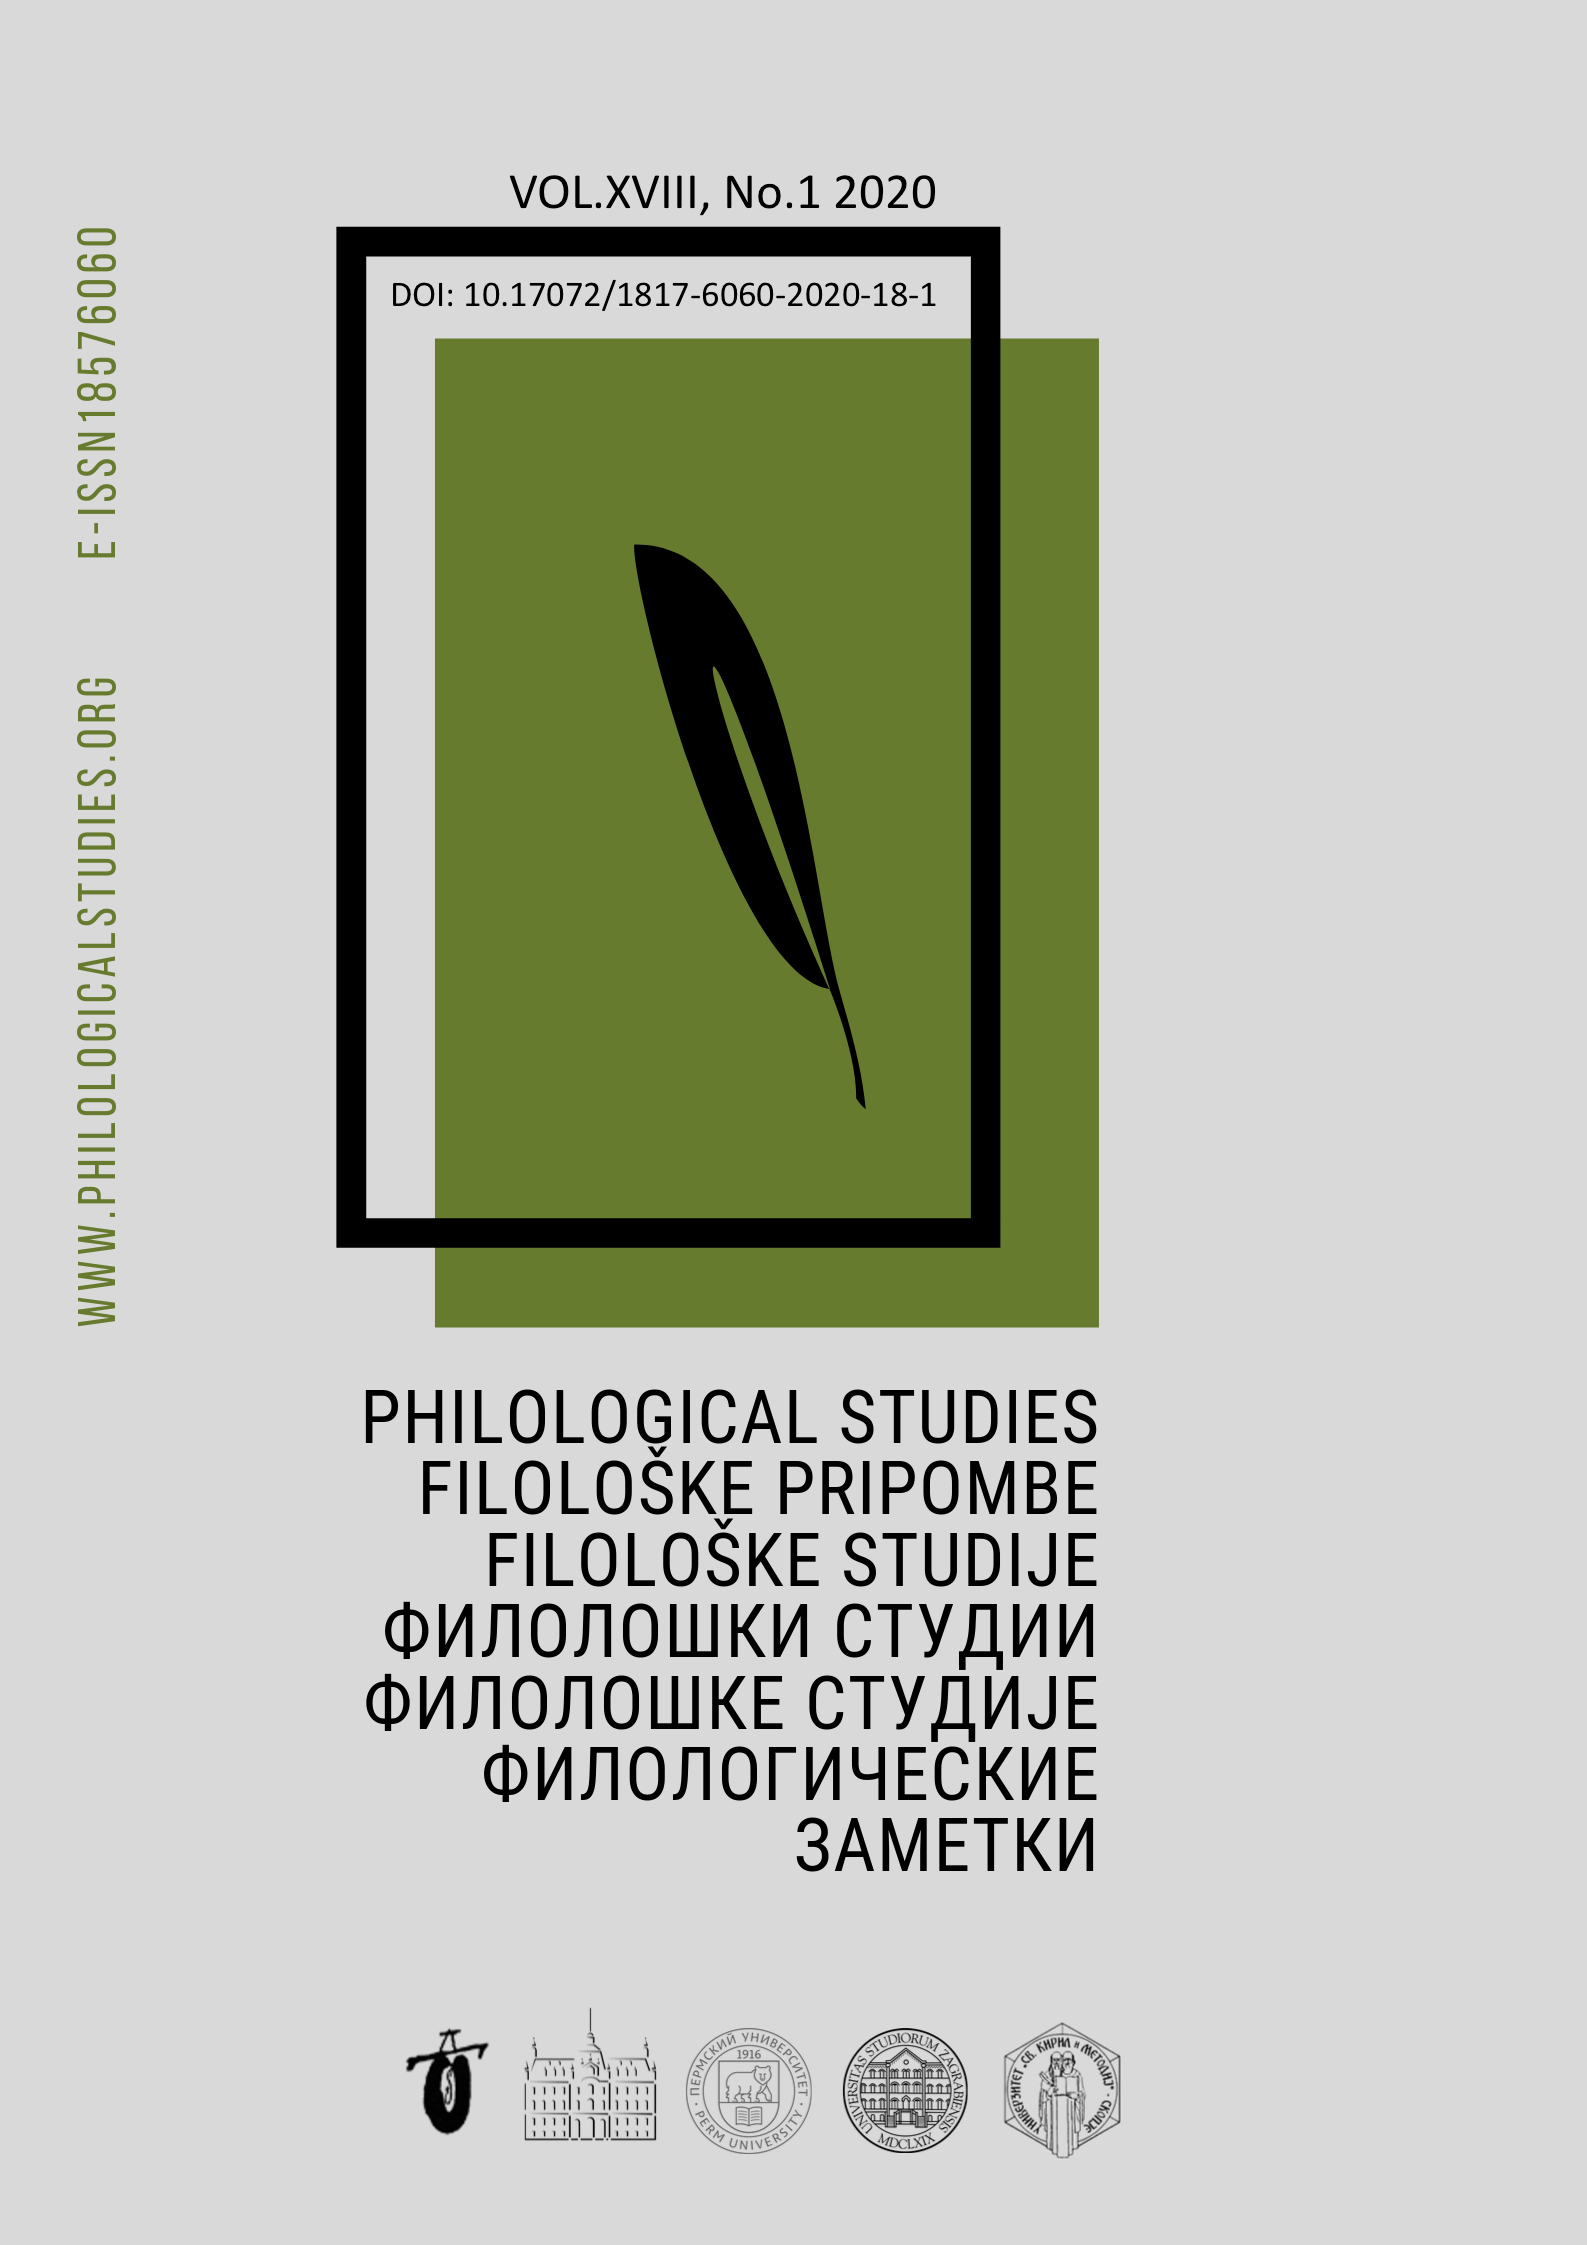 Philological Studies